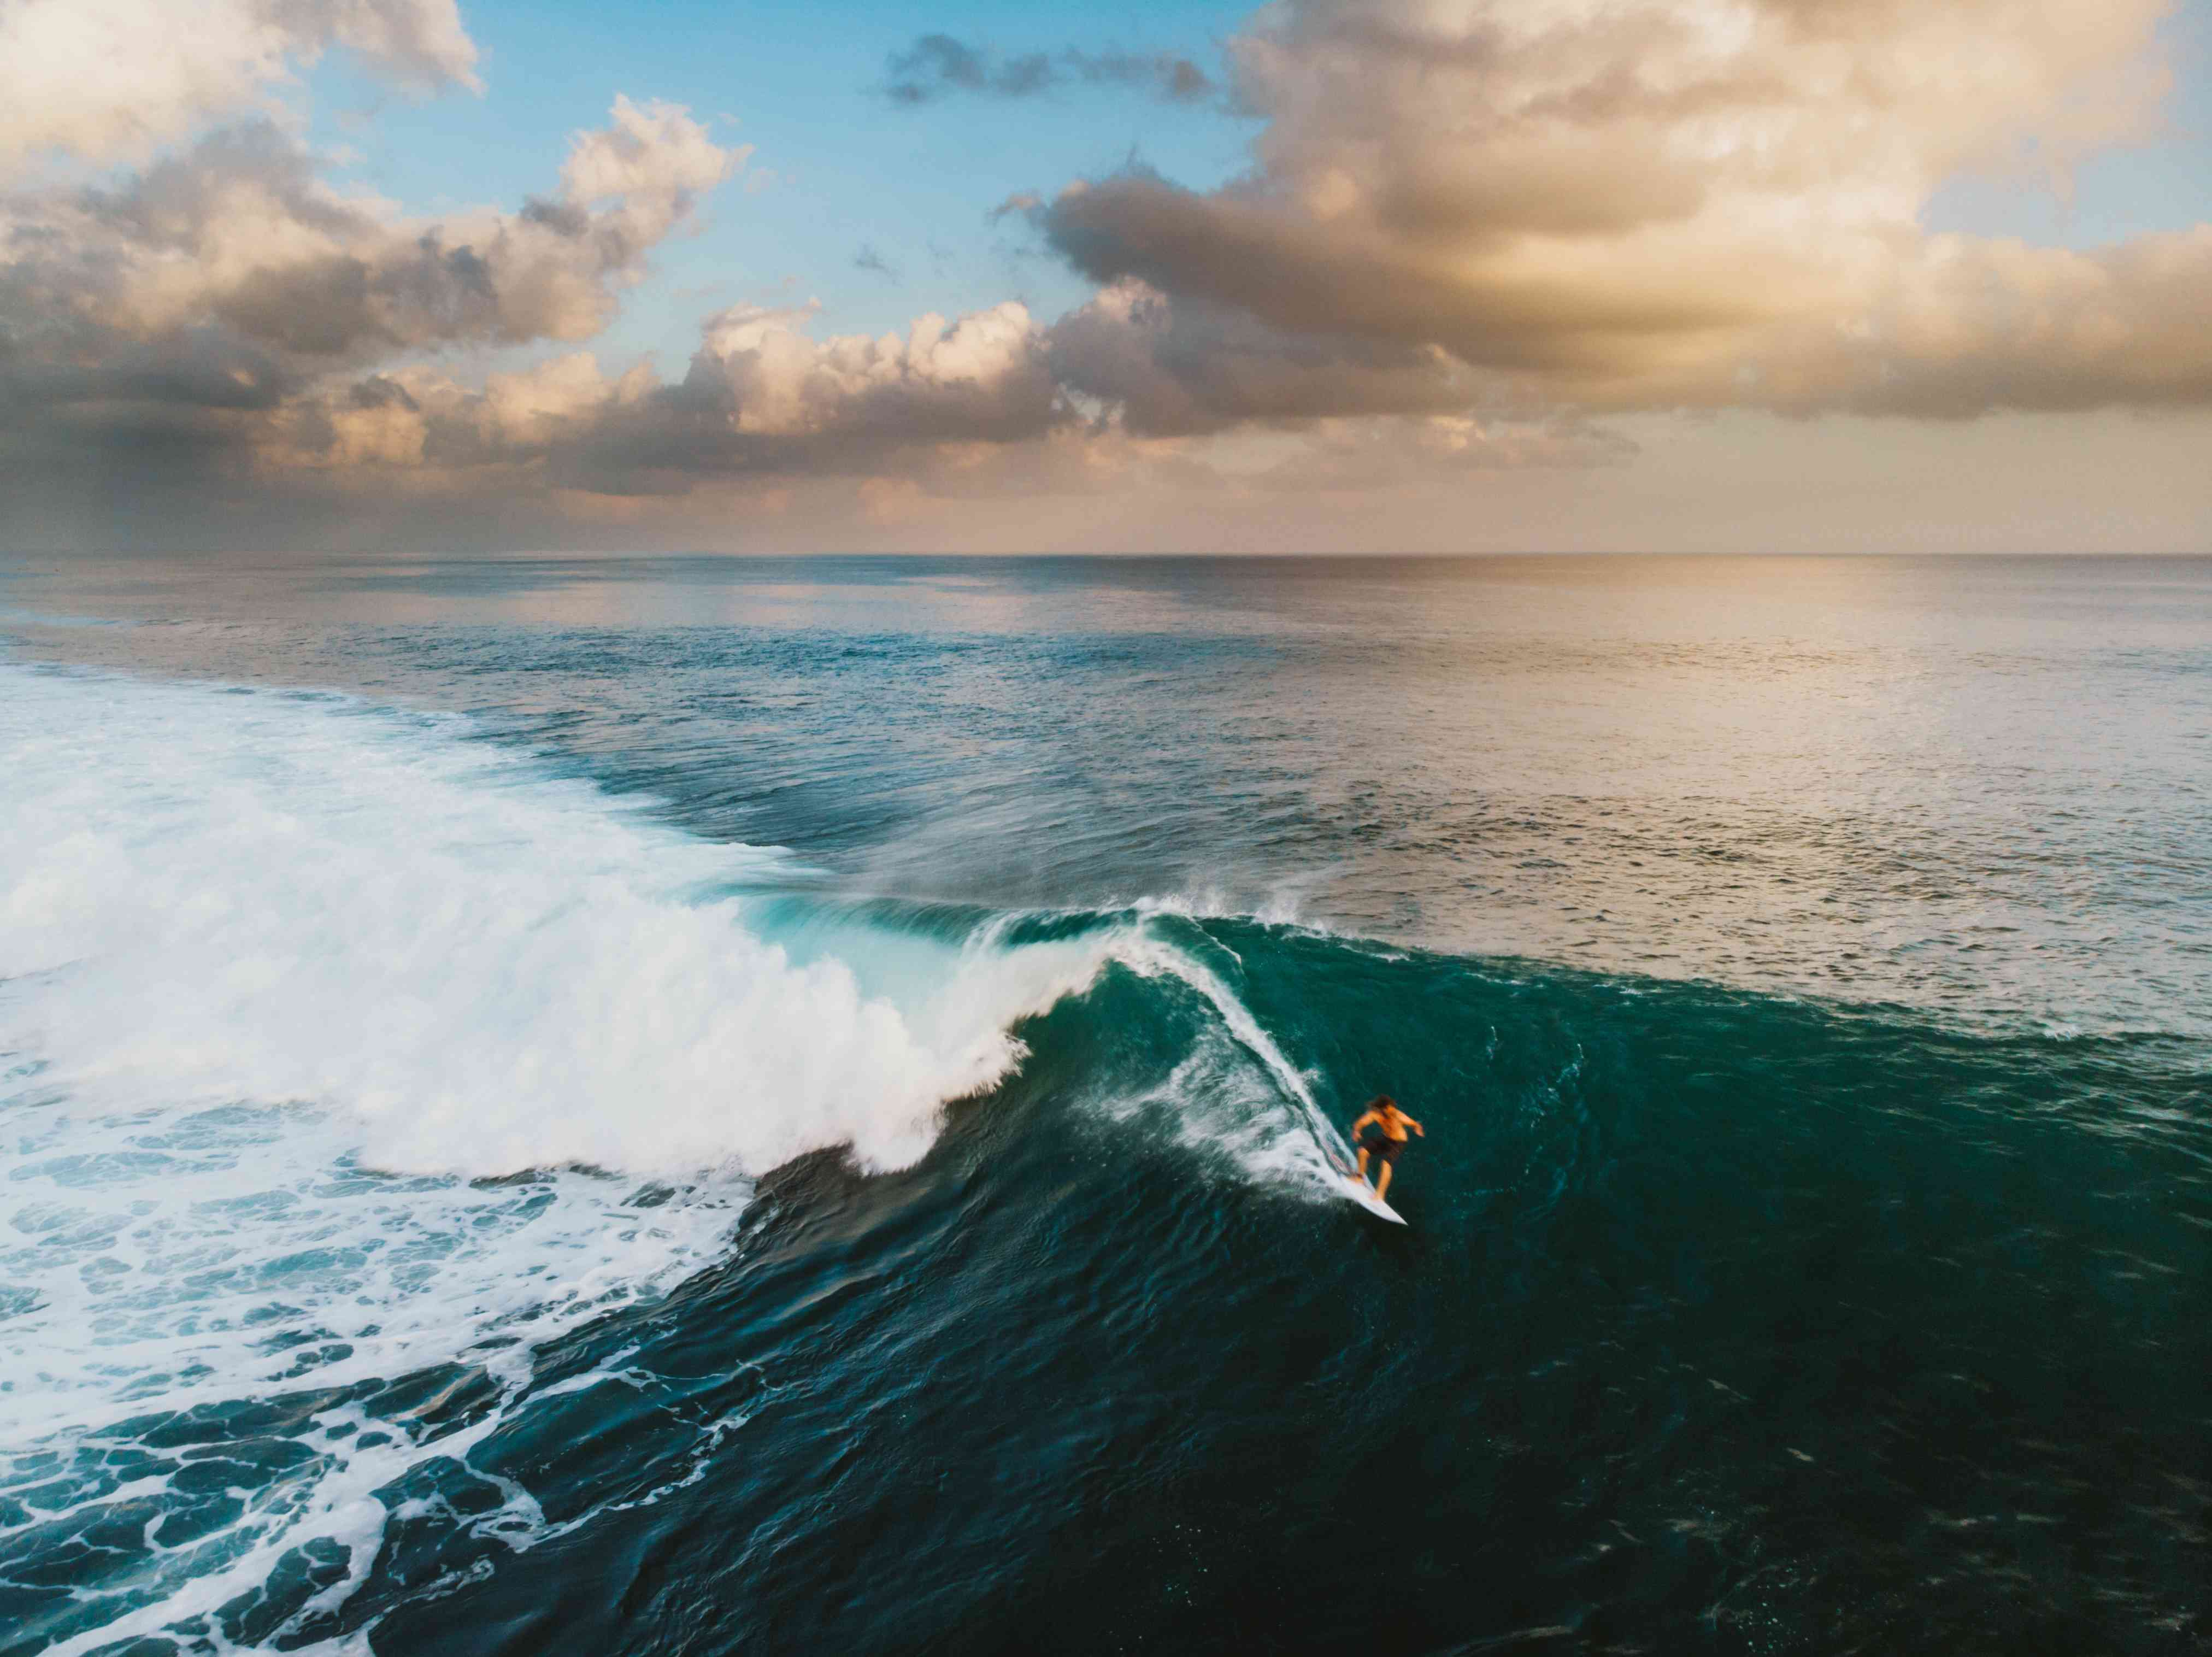 Surfer Riding a Wave in the Bali Surf Zone